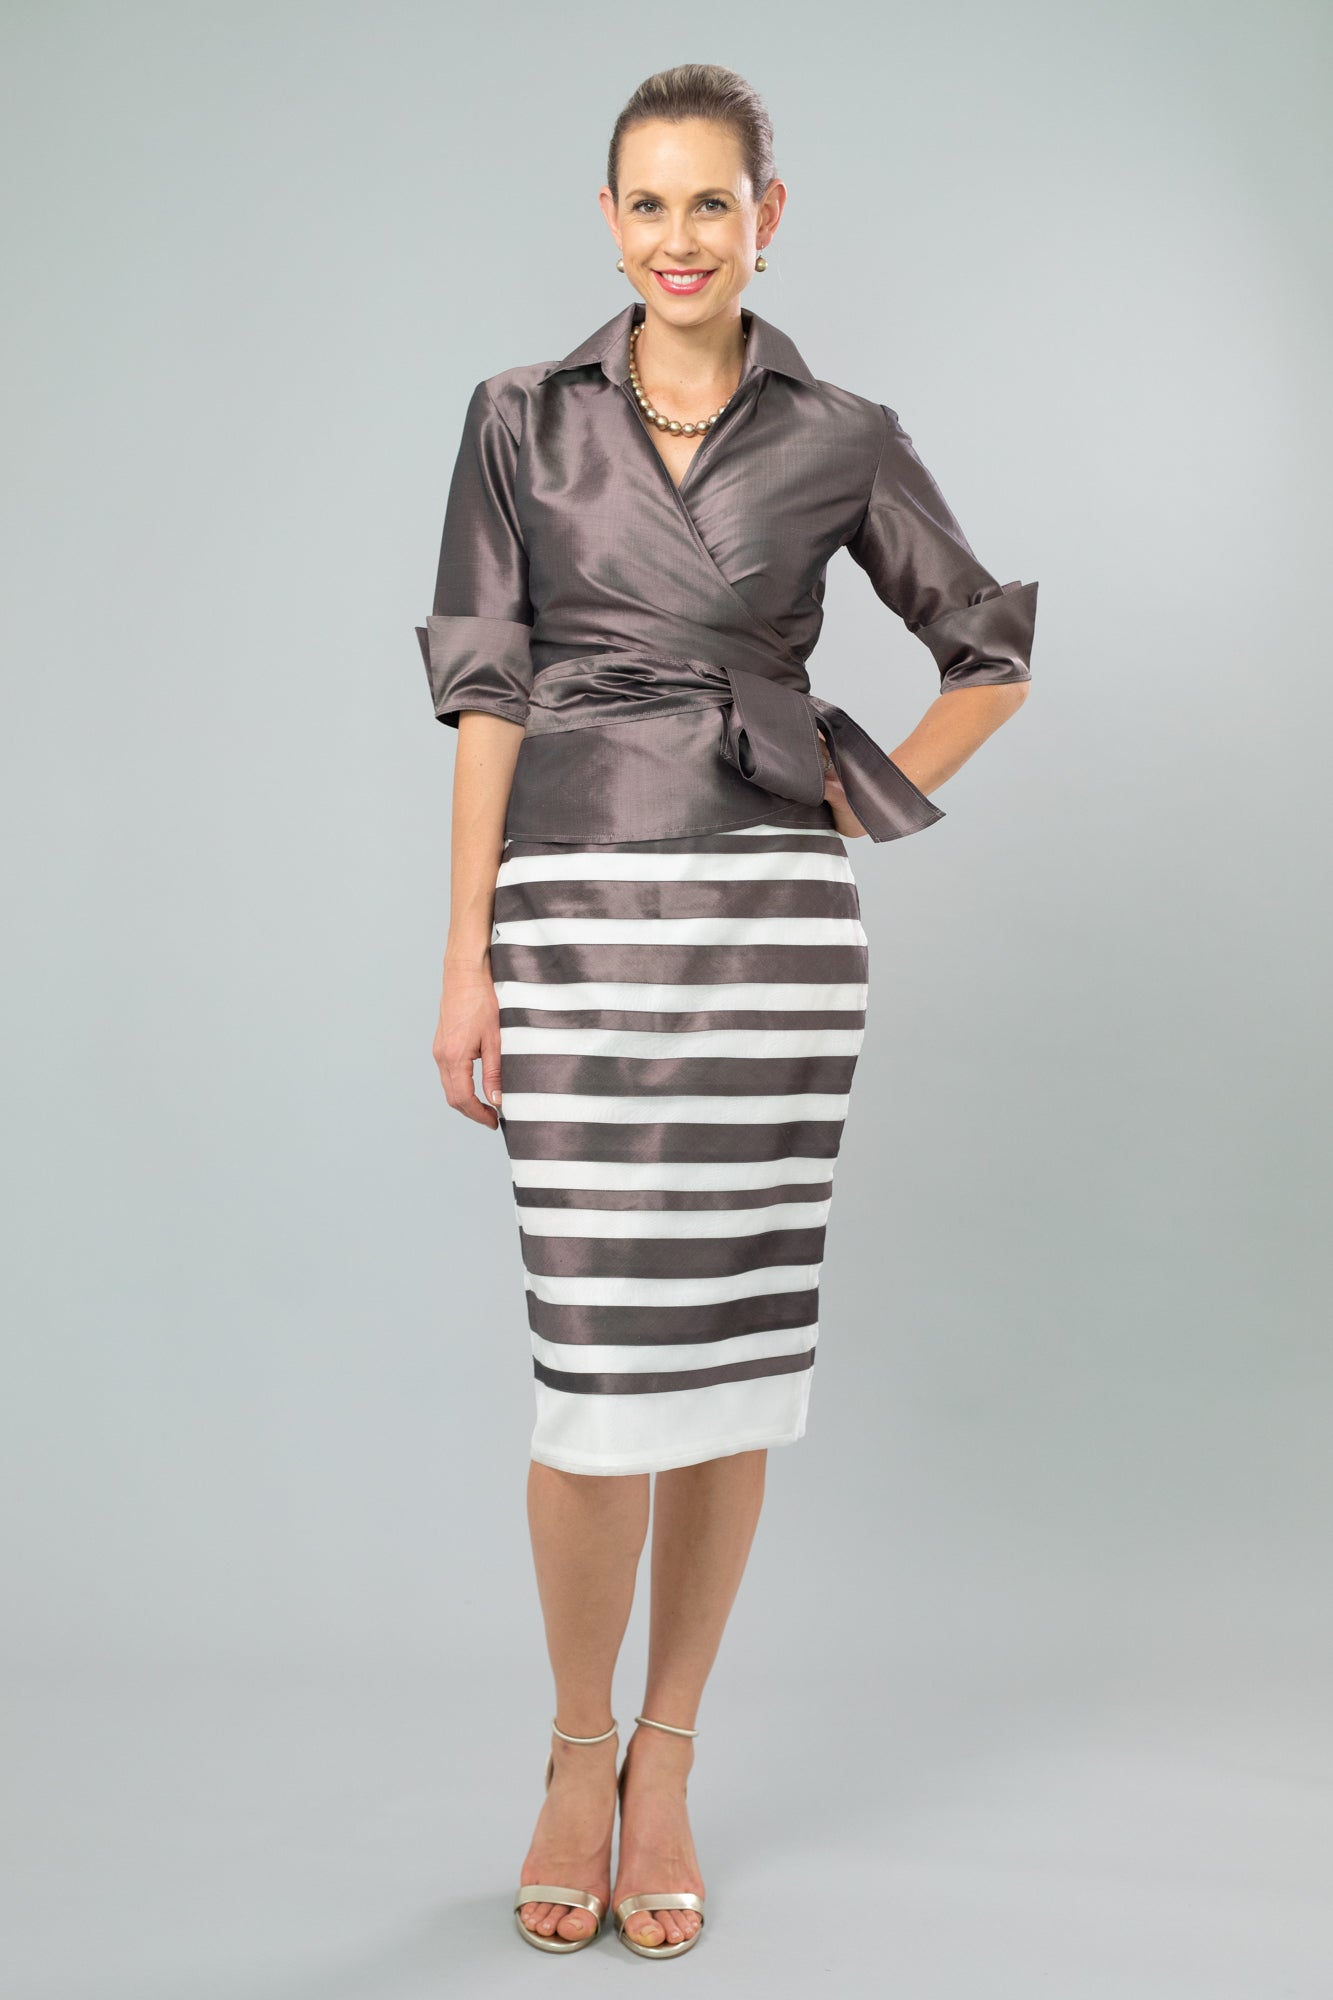 Nickel Pure Silk Classic Wrap Shirt and Zambi Skirt for the Mother of the Bride / Groom from Living Silk